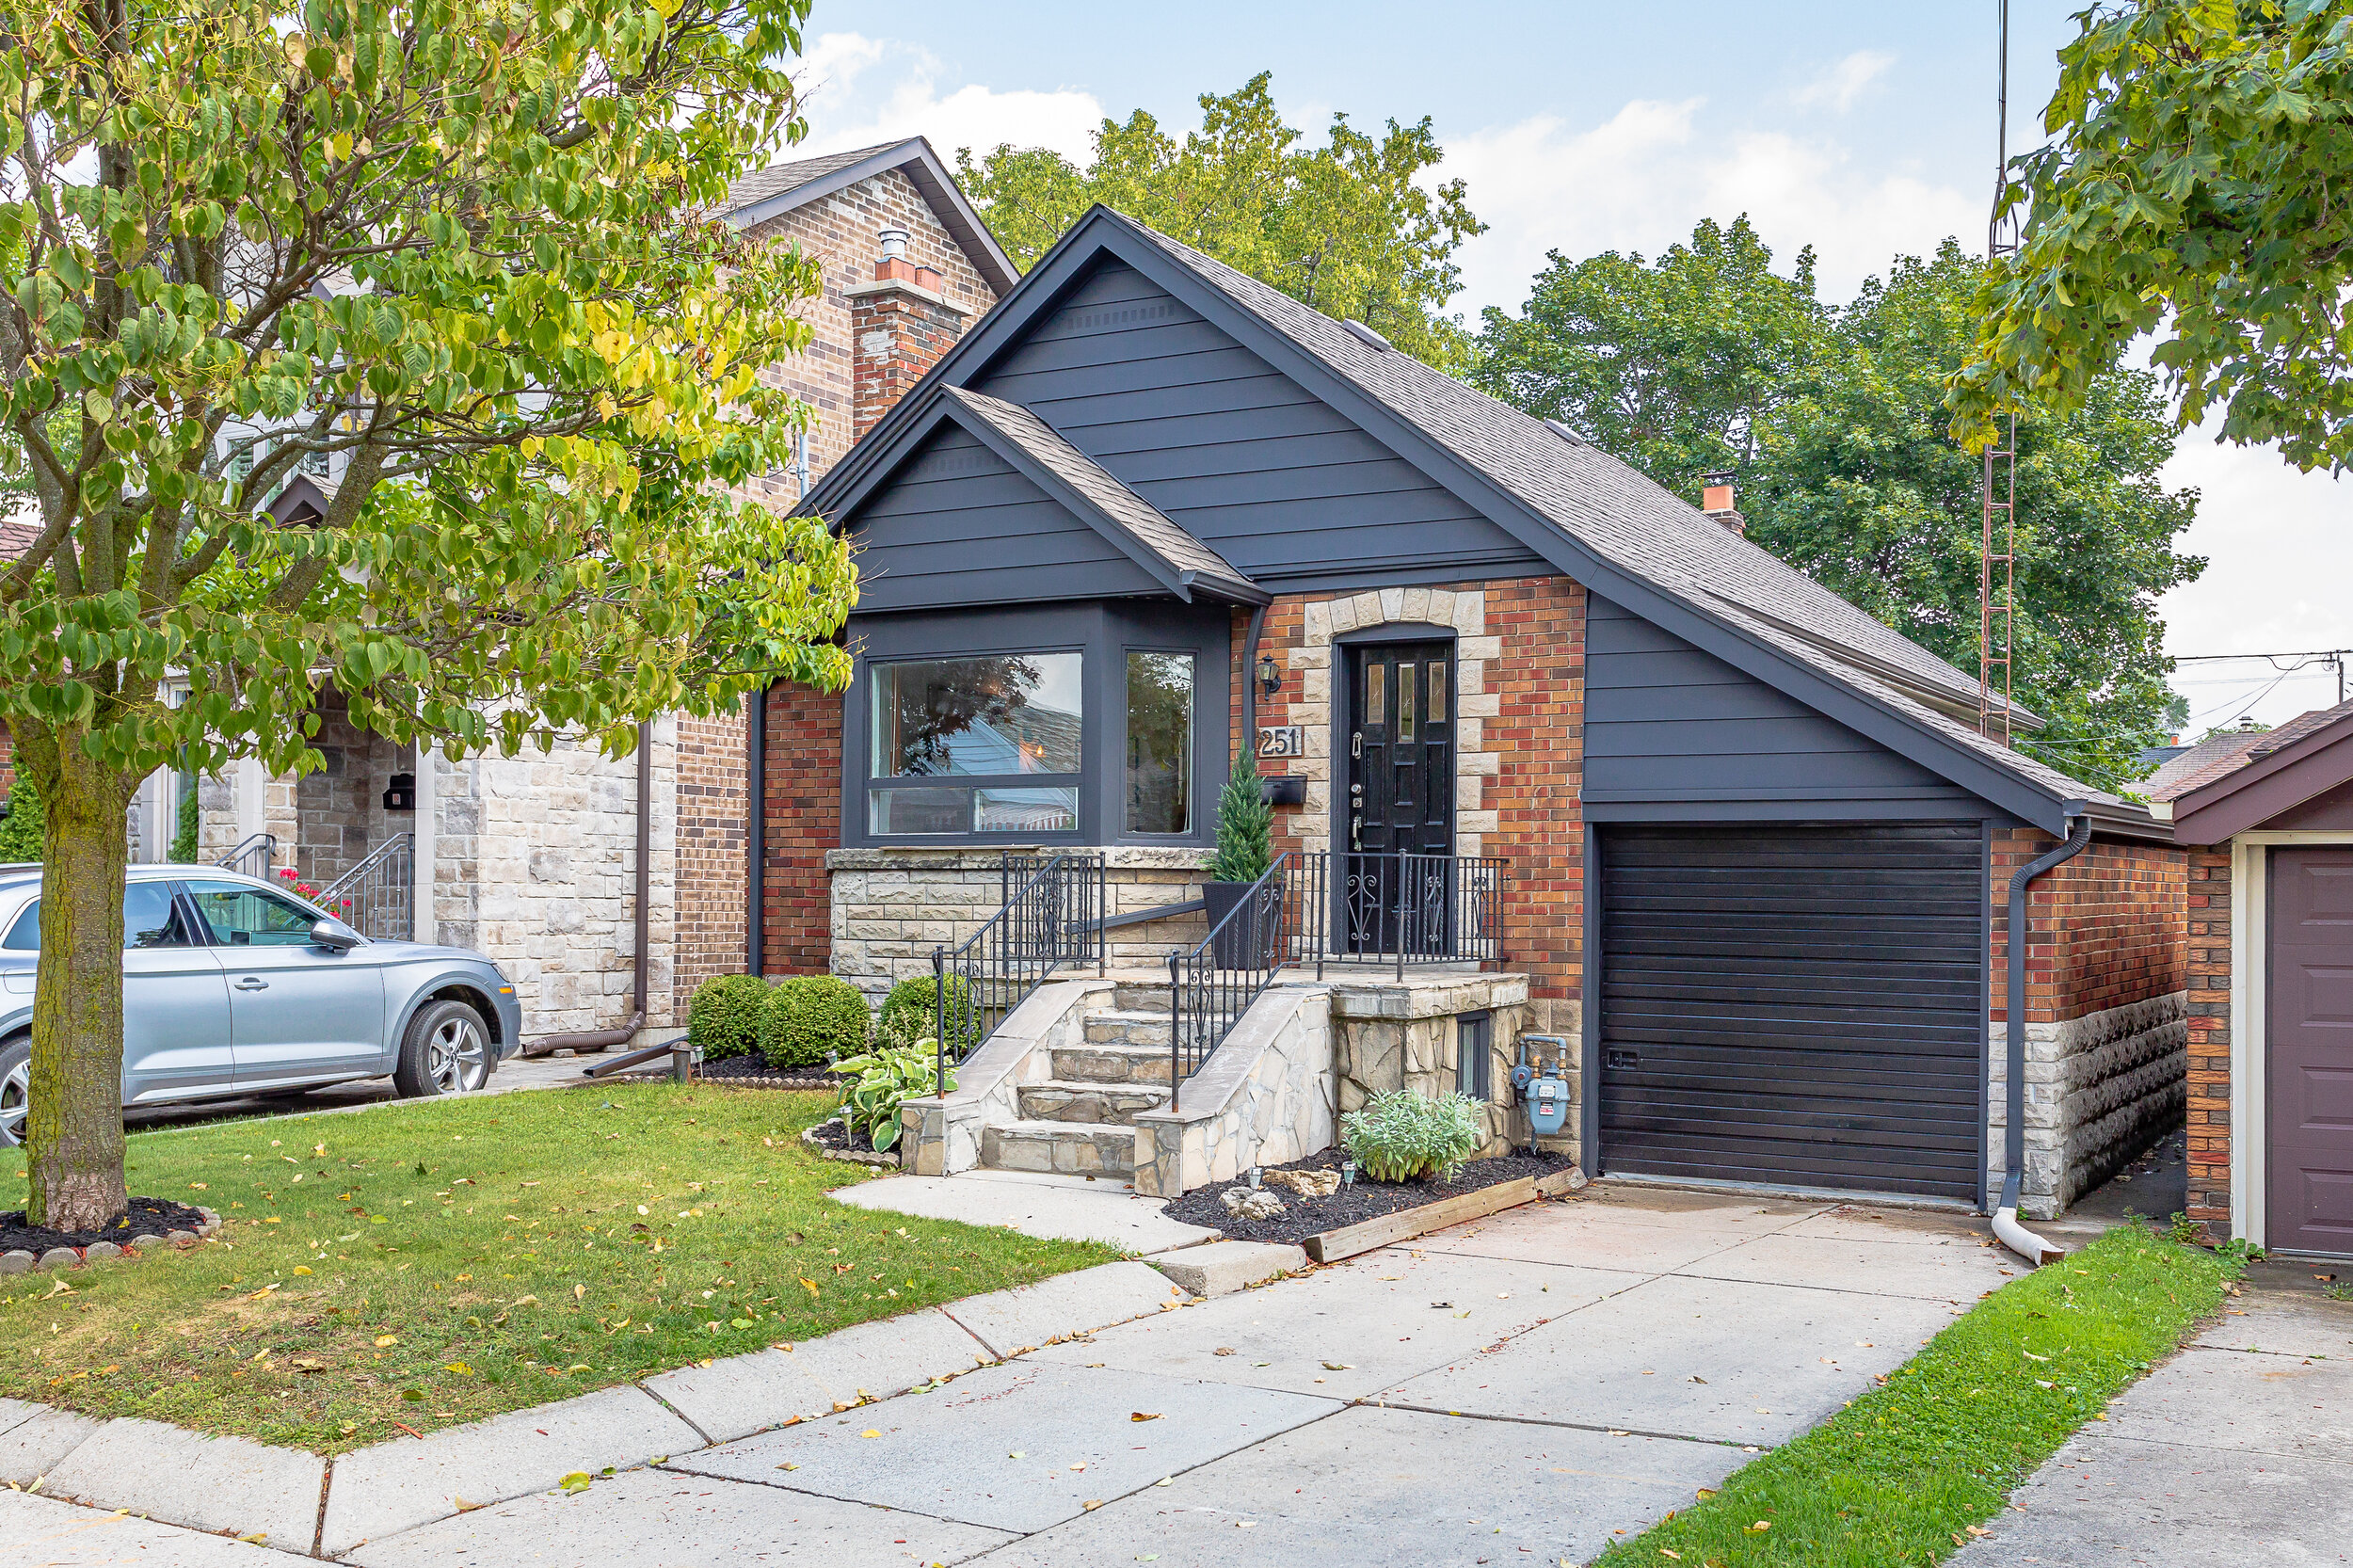 251 Dewhurst Blvd N - Danforth Village